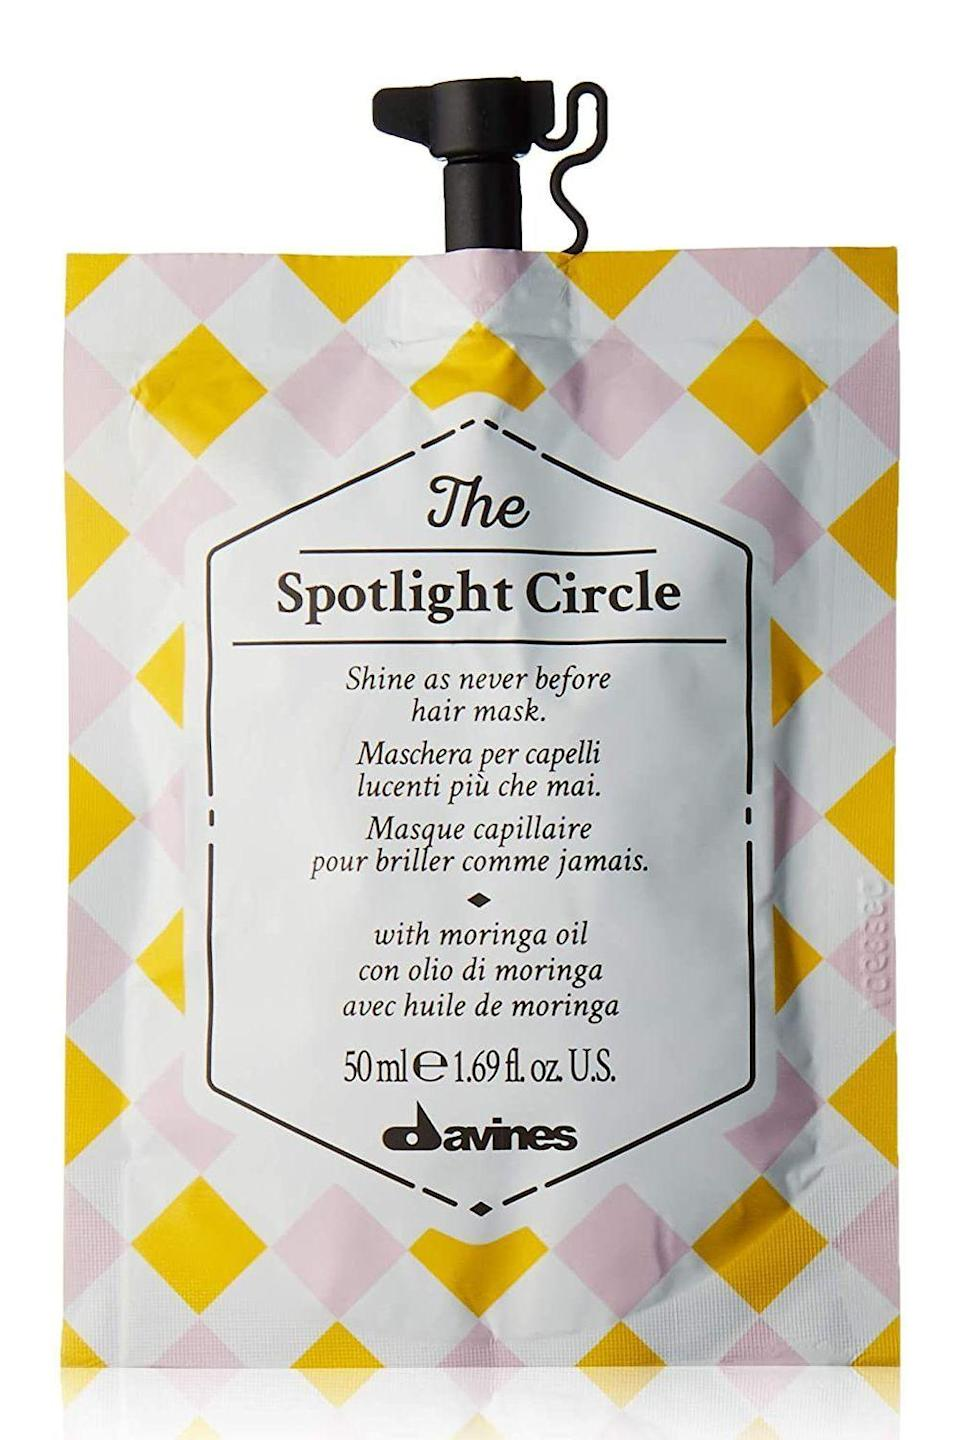 """<p><strong>Davines</strong></p><p>amazon.com</p><p><strong>$10.00</strong></p><p><a href=""""https://www.amazon.com/dp/B076QCQ8HY?tag=syn-yahoo-20&ascsubtag=%5Bartid%7C10049.g.33904719%5Bsrc%7Cyahoo-us"""" rel=""""nofollow noopener"""" target=""""_blank"""" data-ylk=""""slk:shop"""" class=""""link rapid-noclick-resp"""">shop</a></p><p>A <a href=""""https://www.cosmopolitan.com/style-beauty/beauty/advice/a5159/hair-mask-for-hair-type/"""" rel=""""nofollow noopener"""" target=""""_blank"""" data-ylk=""""slk:hair mask"""" class=""""link rapid-noclick-resp"""">hair mask</a> that doesn't weigh down even the most baby-fine strands?! Yes, it exists, and it comes inside this little packet with a clever closable lid. The formula is free of silicones, but full of vitamins, fatty acids, and proteins.</p>"""